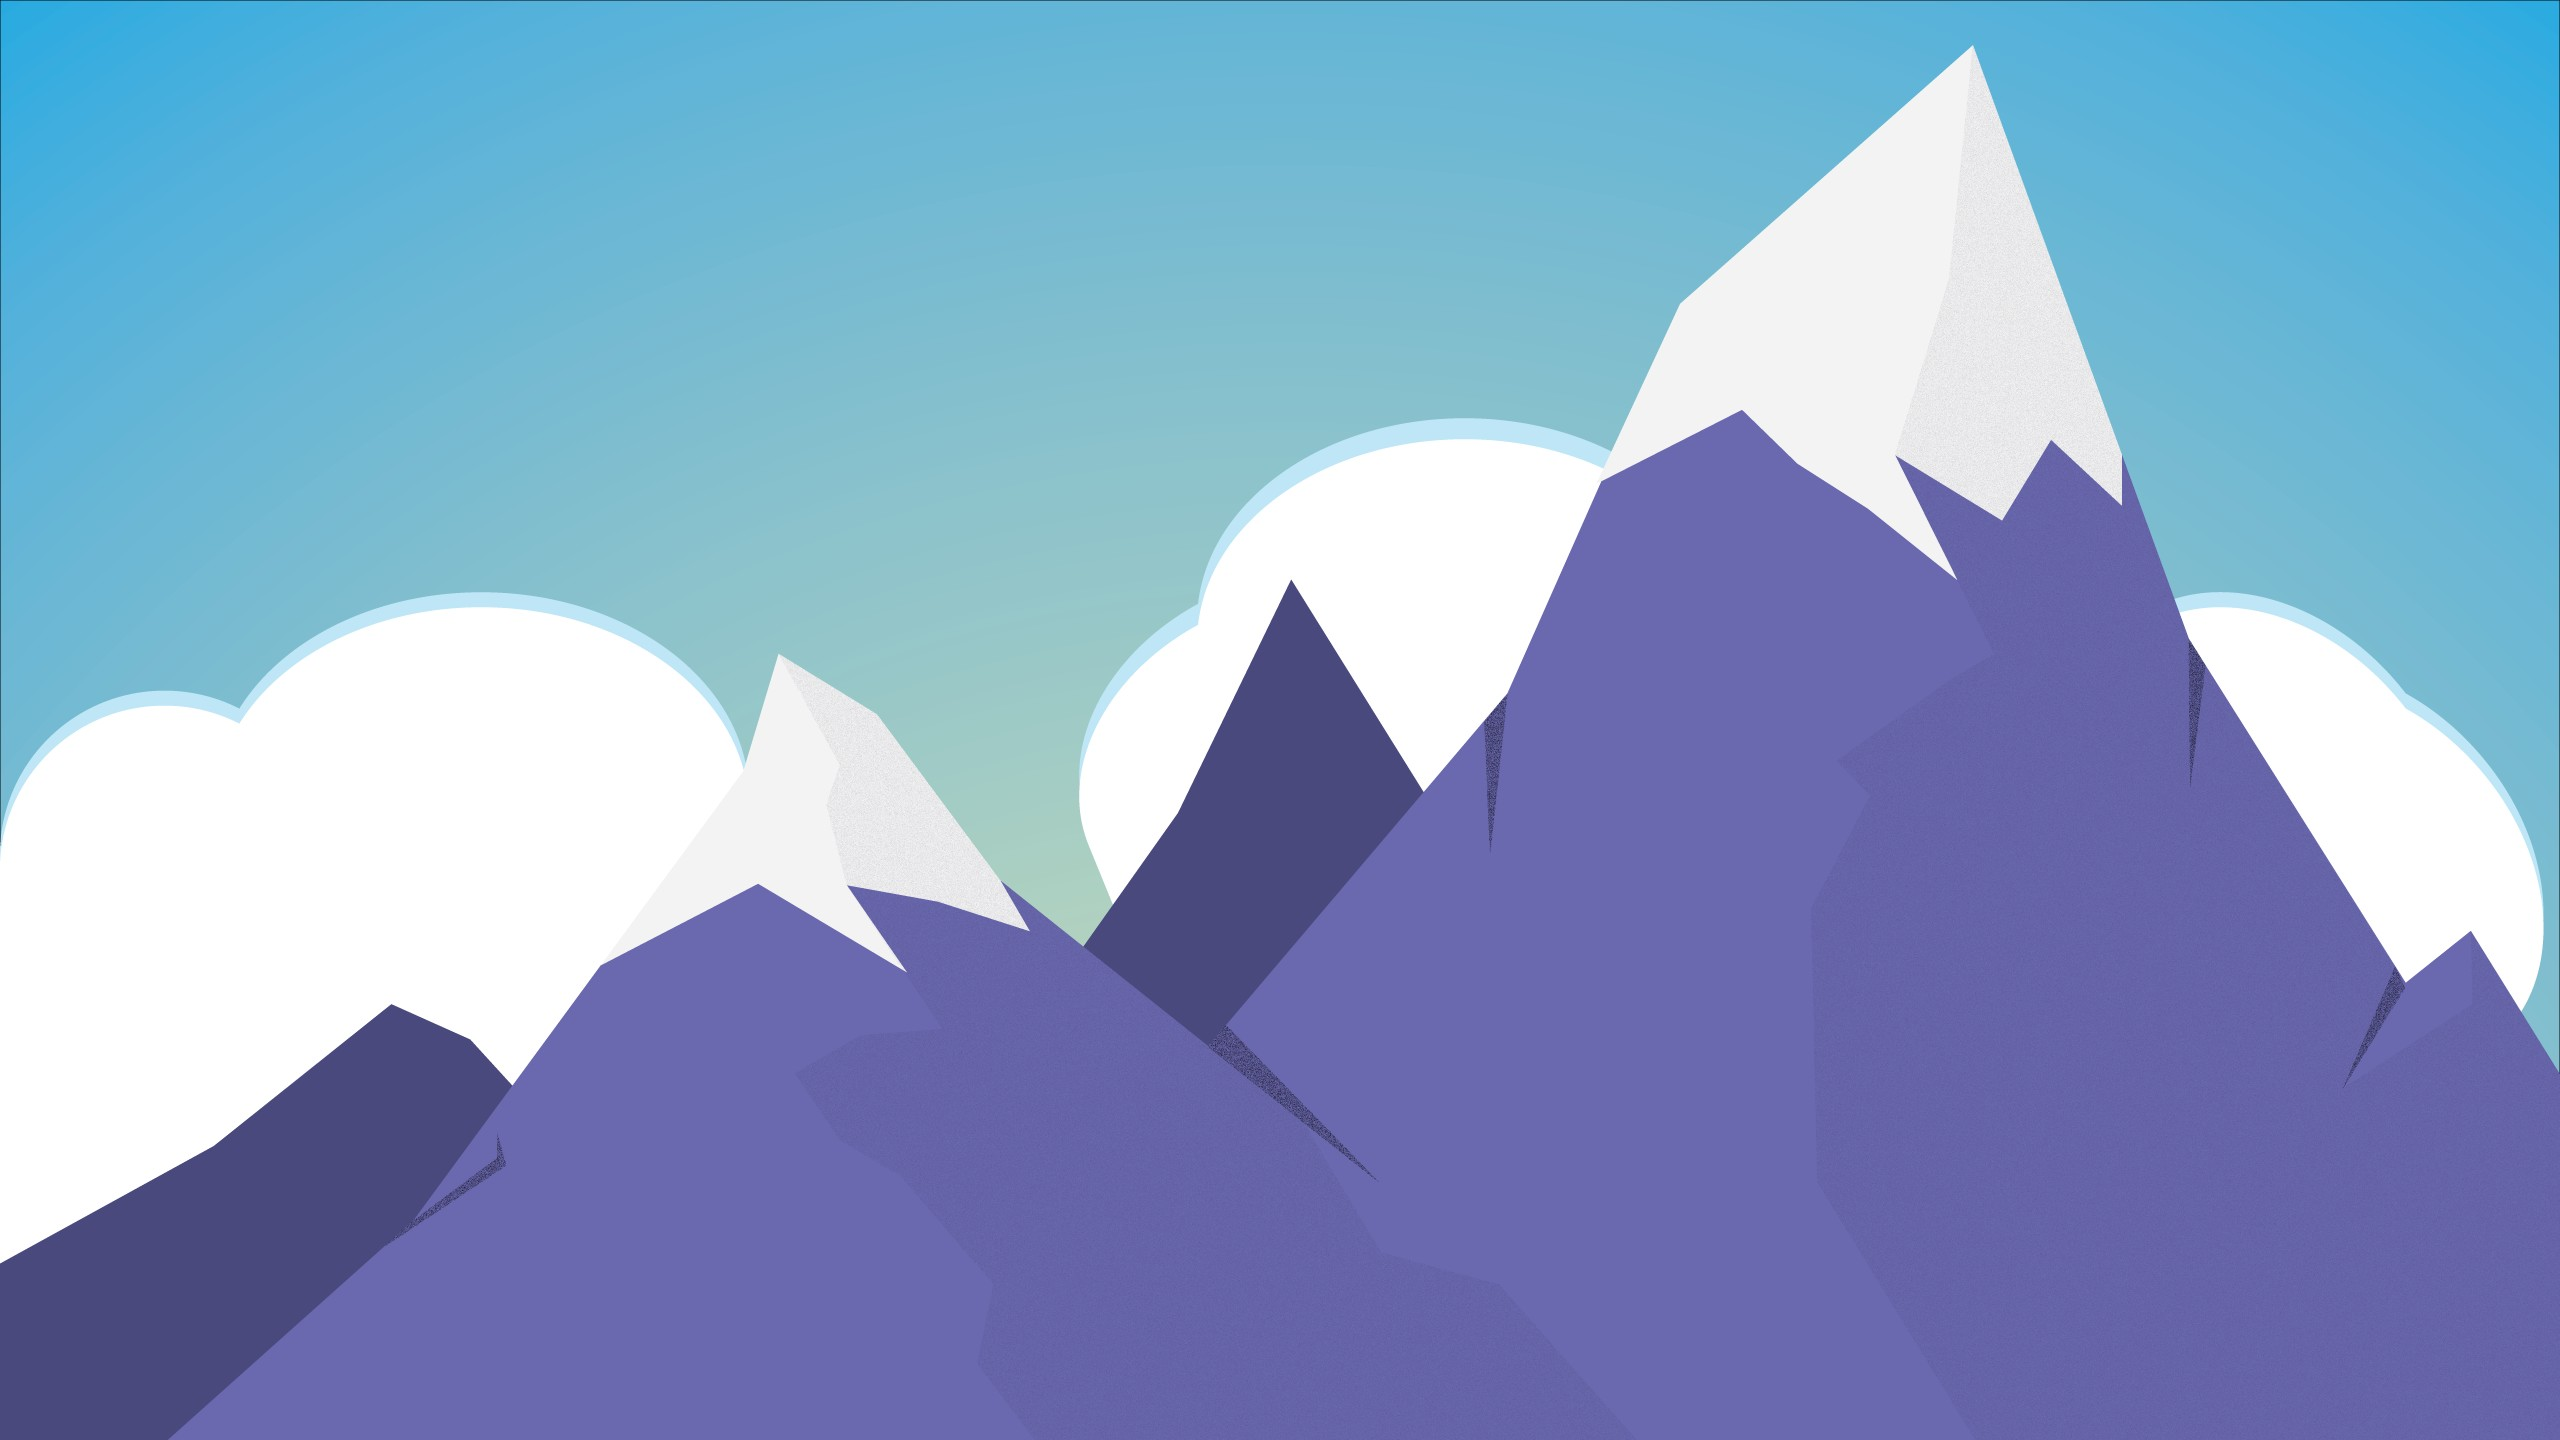 Free Mountain Cliparts, Download Free Clip Art, Free Clip.